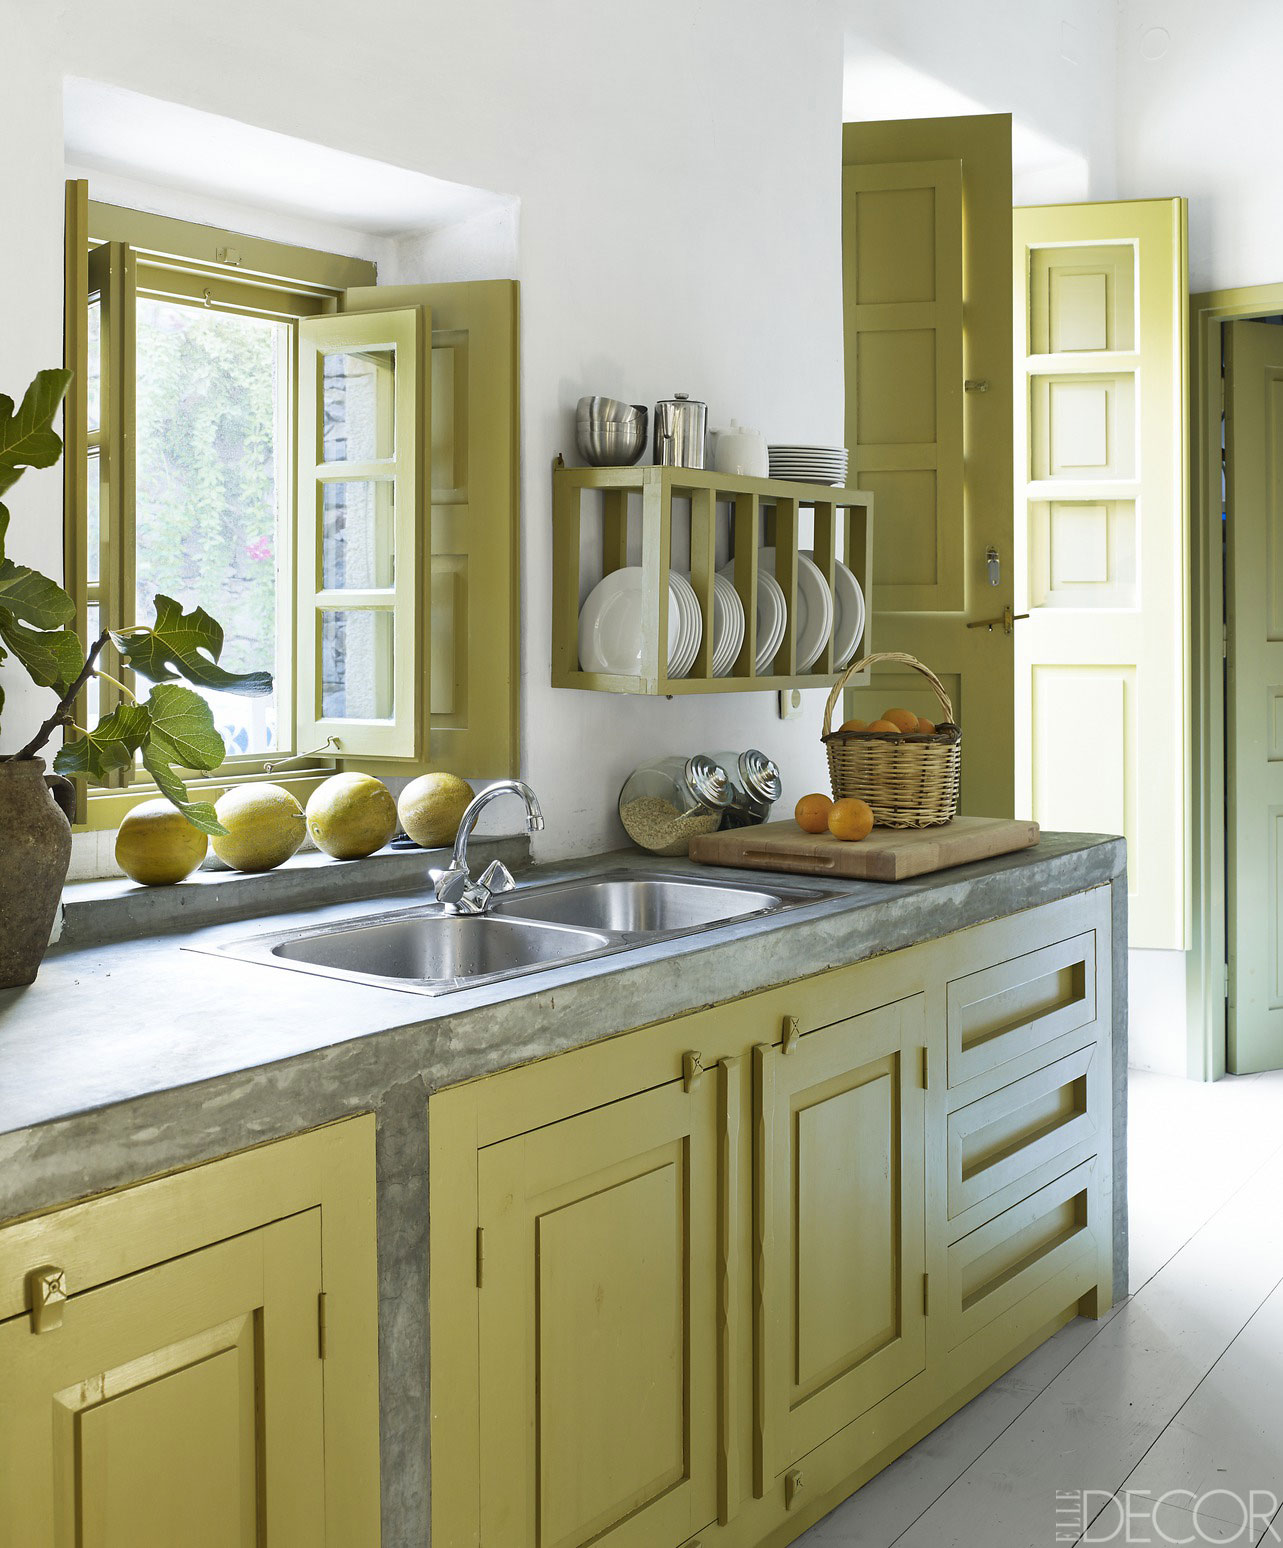 small kitchen ideas 50 small kitchen design ideas - decorating tiny kitchens KUVUKWX